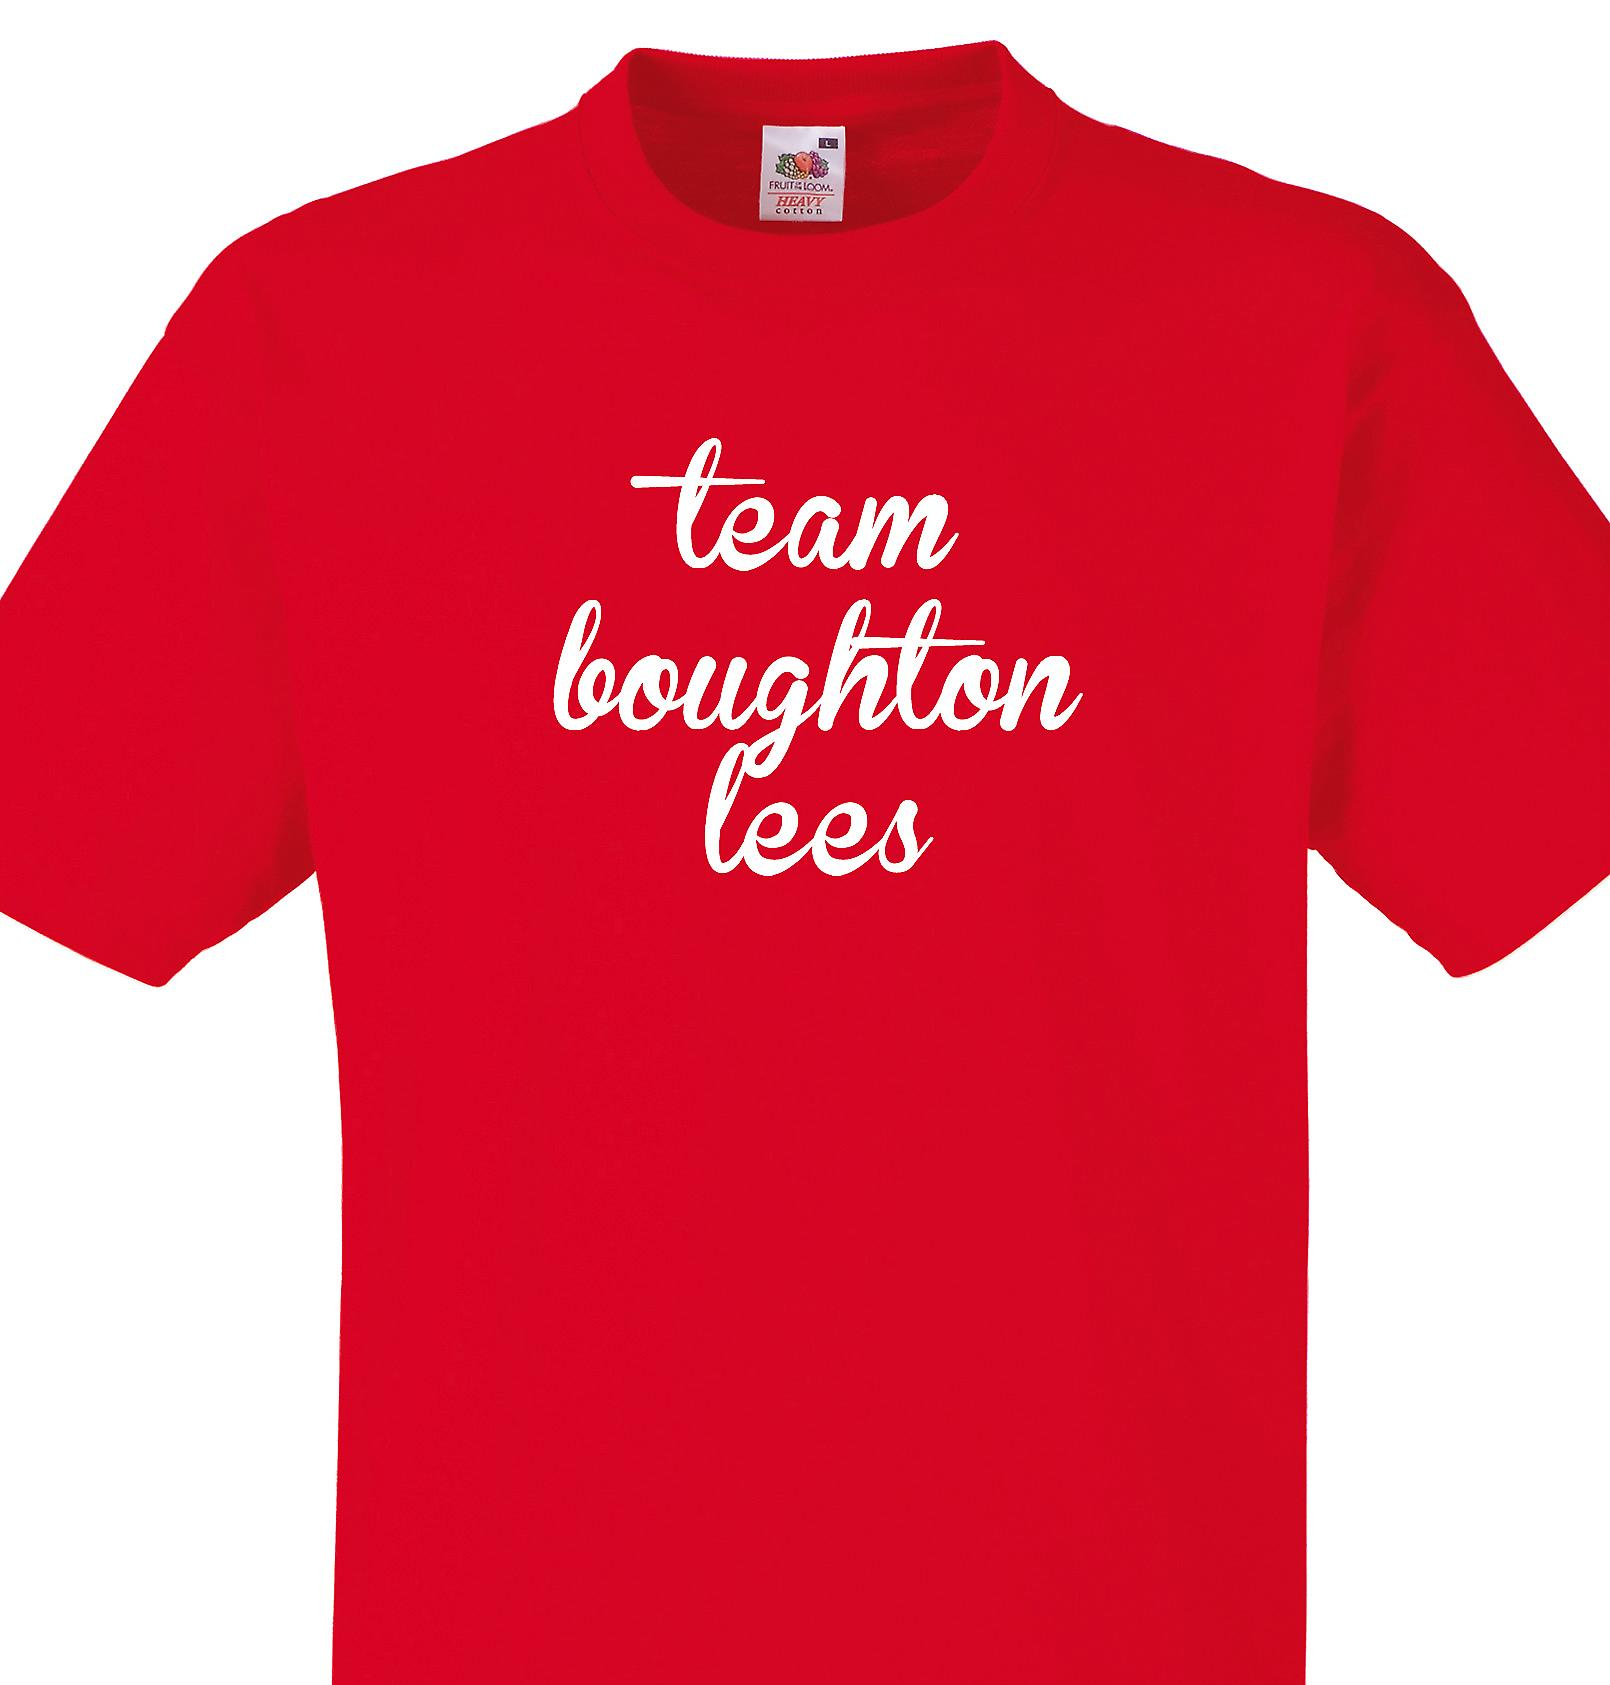 Team Boughton lees Red T shirt